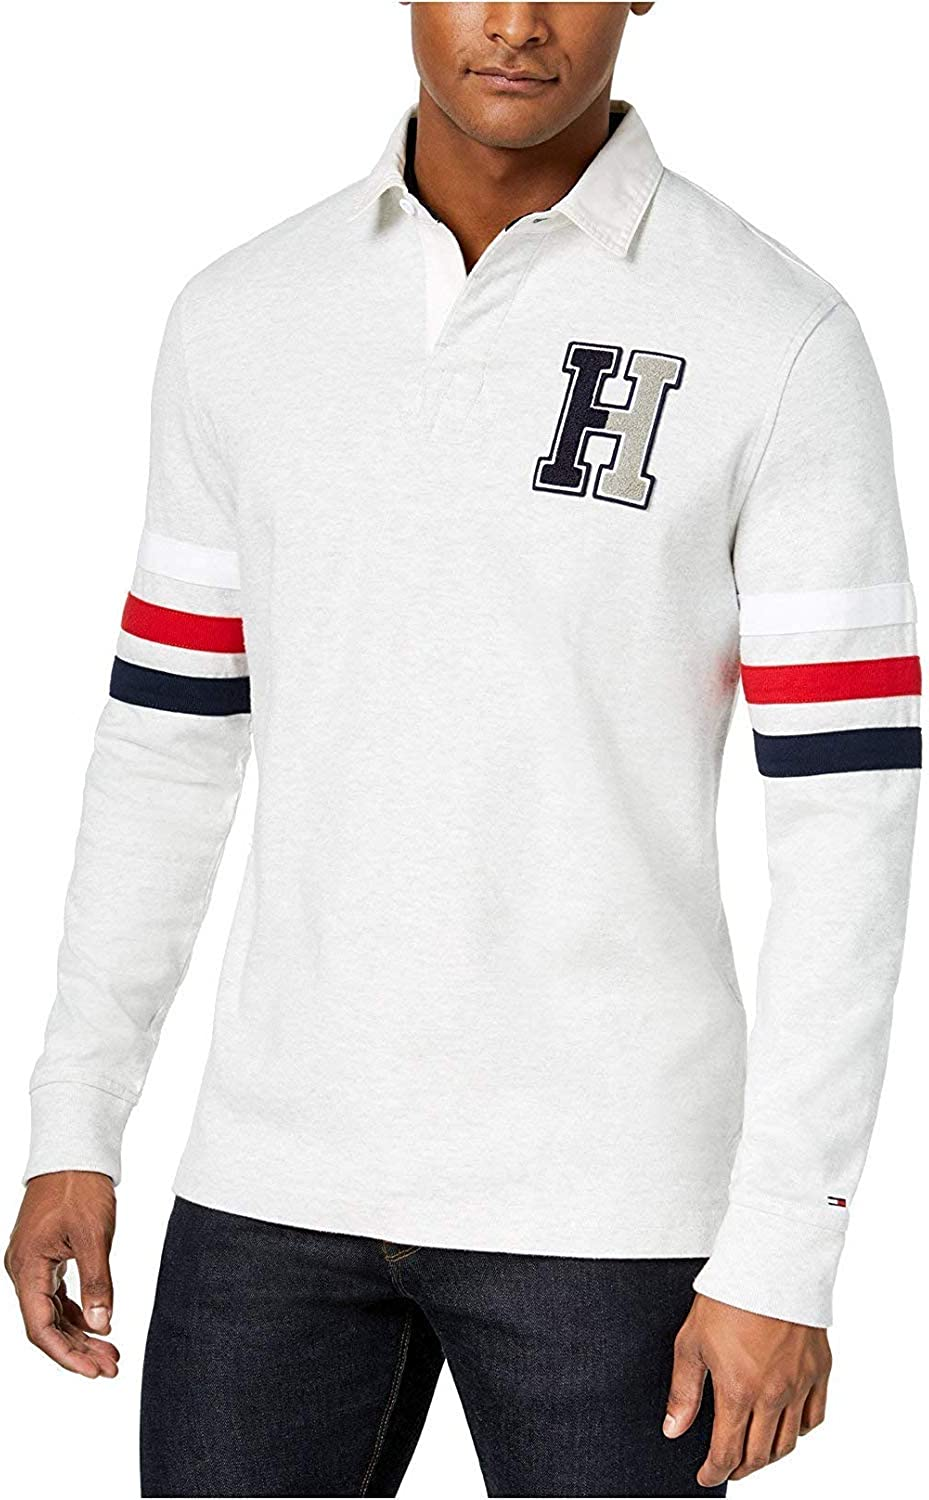 Tommy Hilfiger Mens Classic Fit Polo